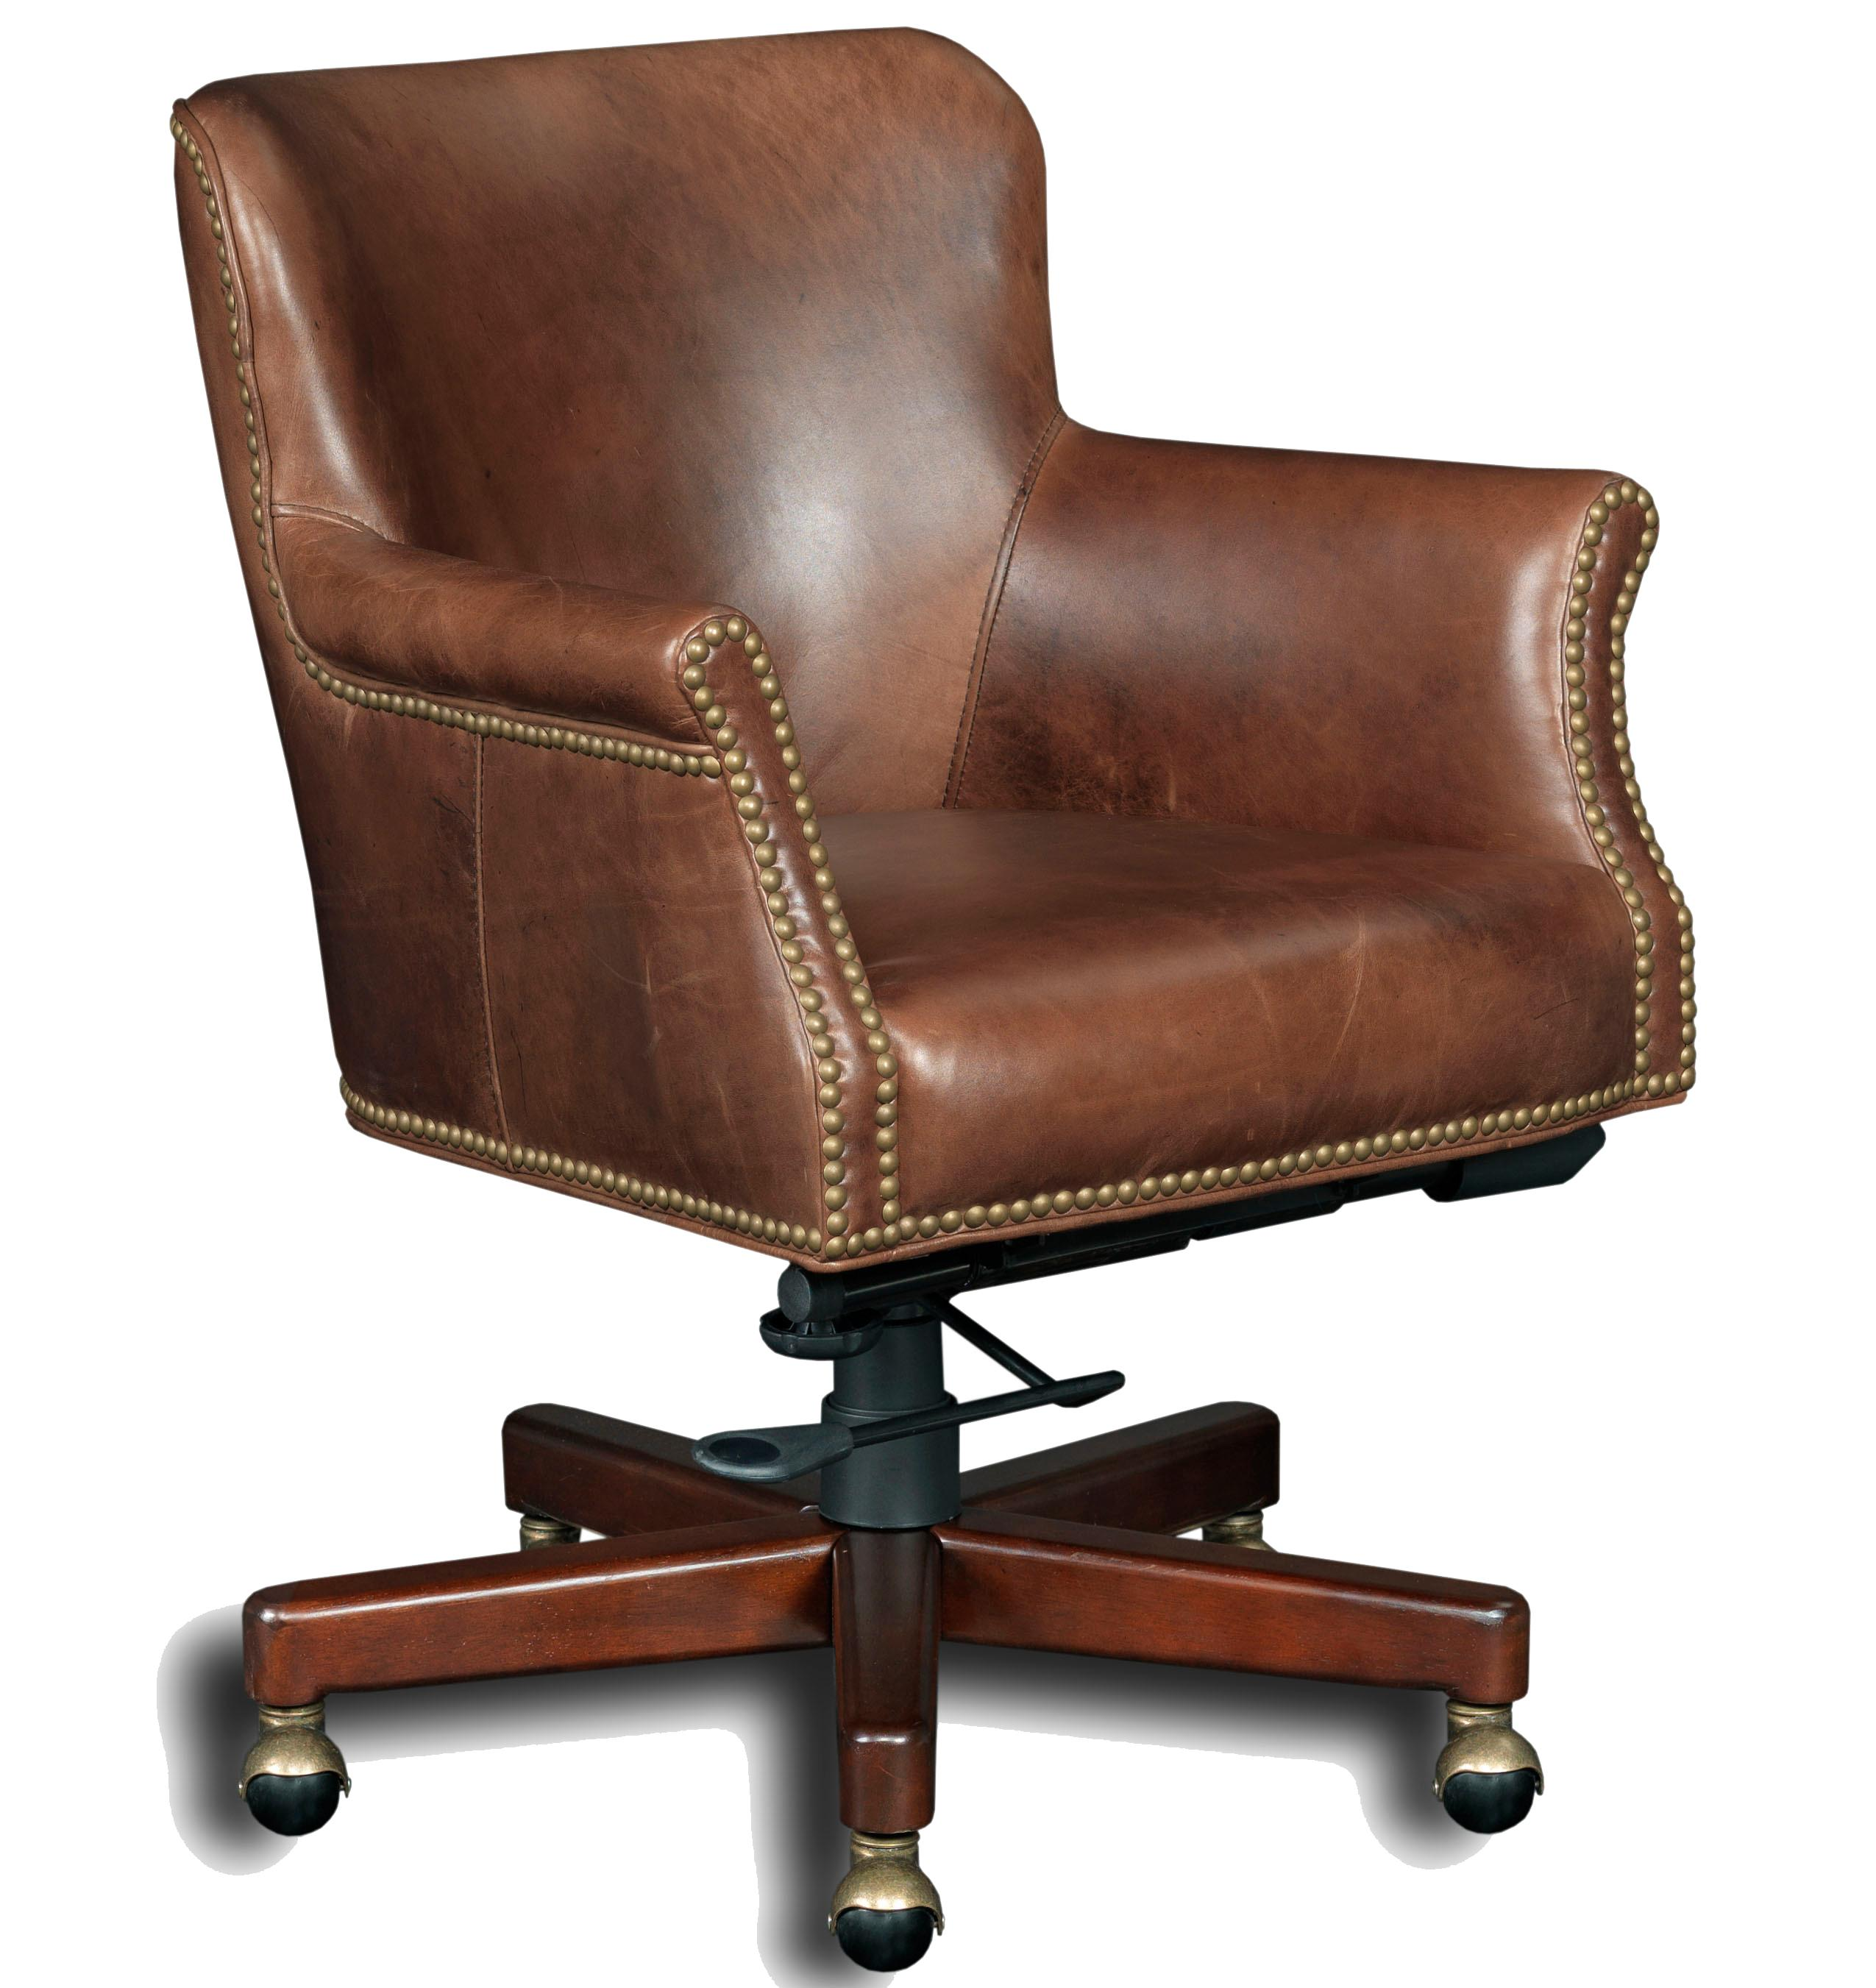 Executive Seating Executive Tilt Swivel Chair by Hooker Furniture at Alison Craig Home Furnishings